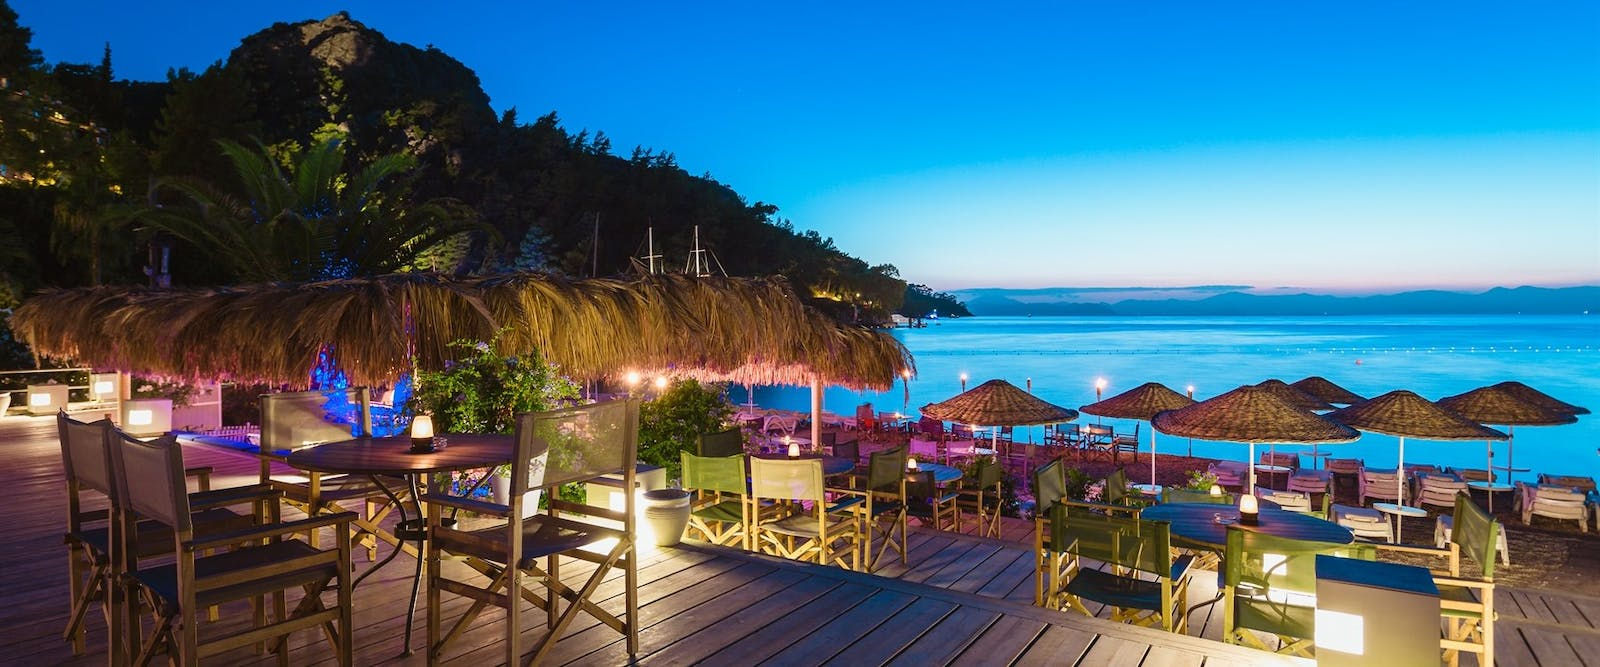 Not a Care in the World at Hillside Beach Club, Fethiye, Turkey